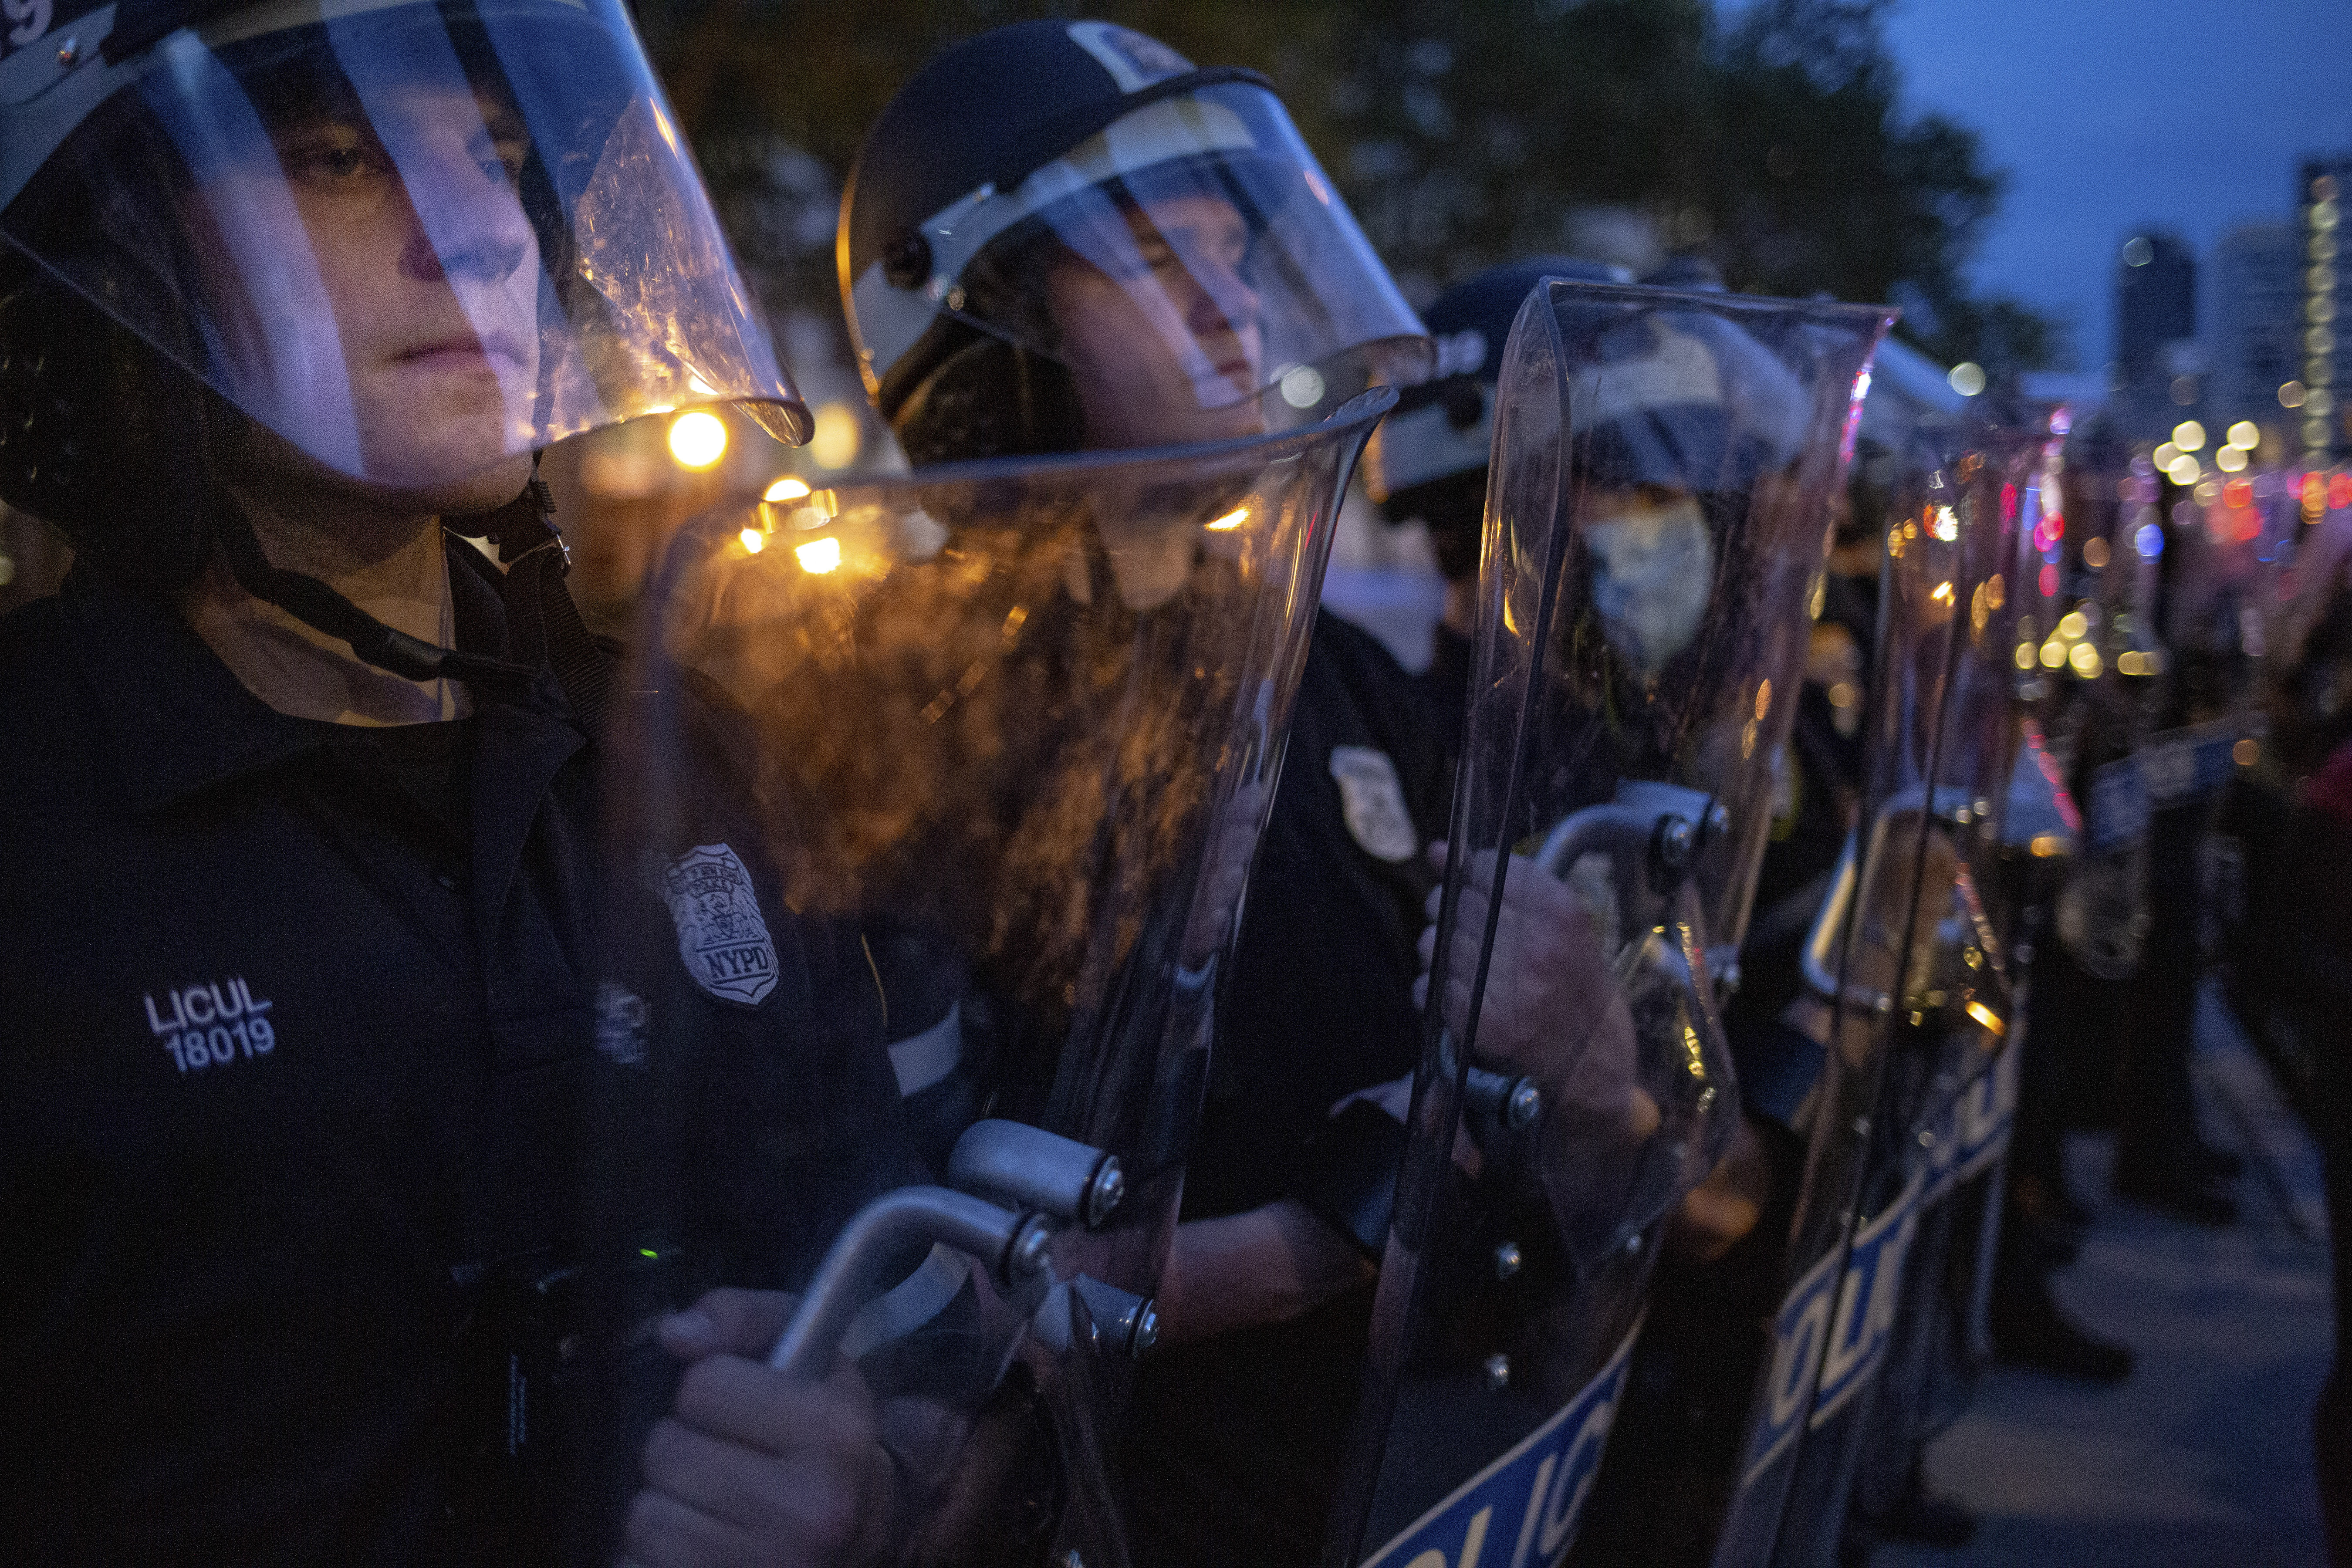 Kettling of Peaceful Protesters Shows Aggressive Shift by New York Police